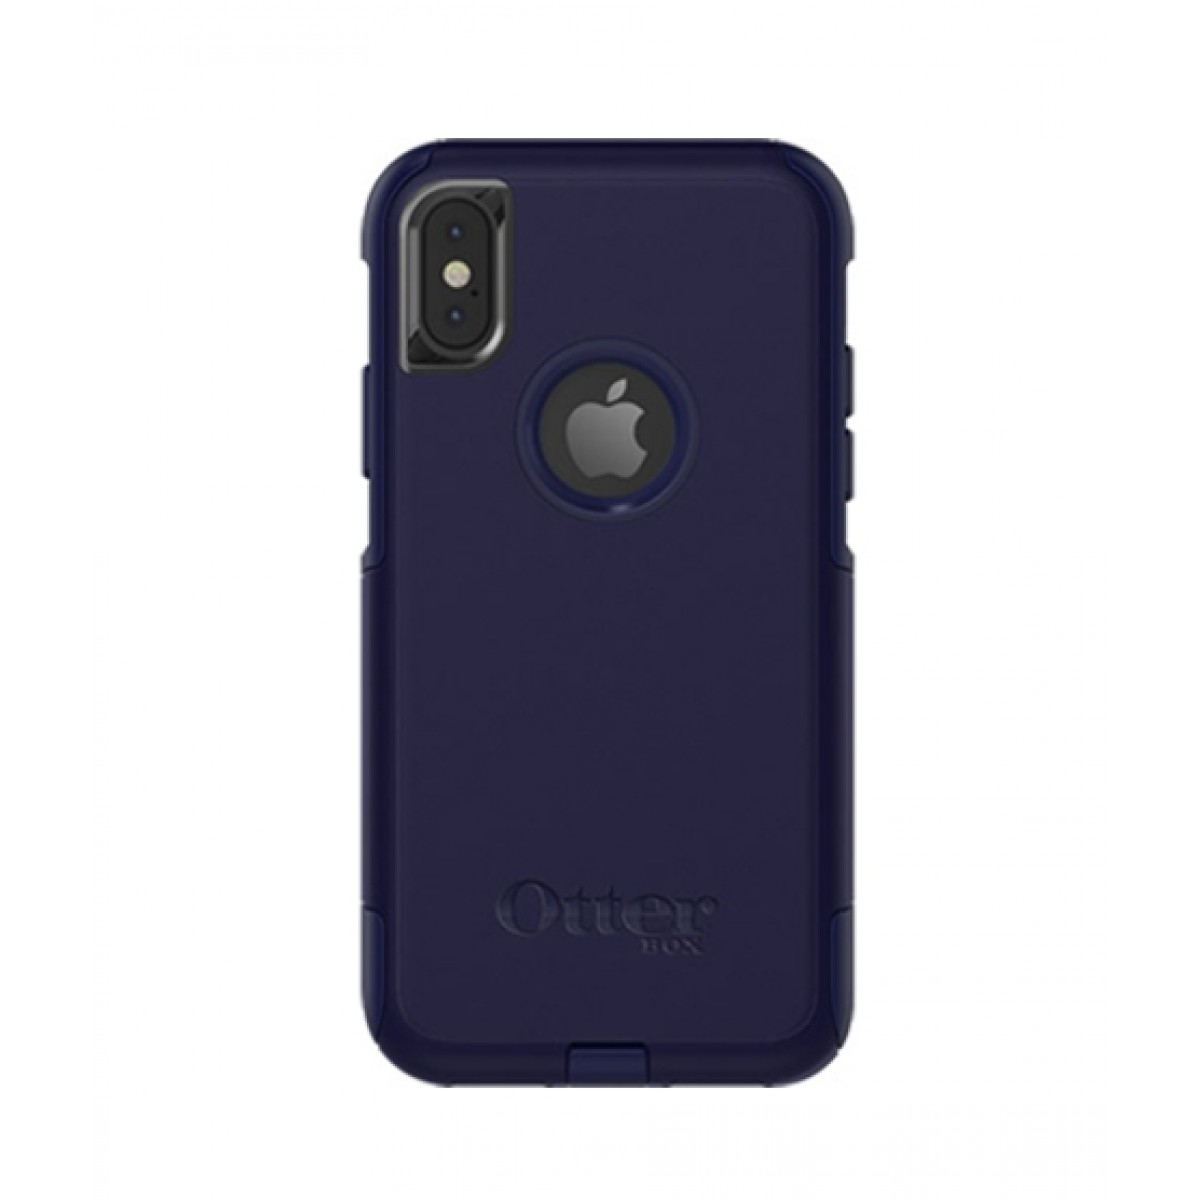 100% authentic 8095a 6e80c OtterBox Commuter Series Indigo Way Case For iPhone X/XS